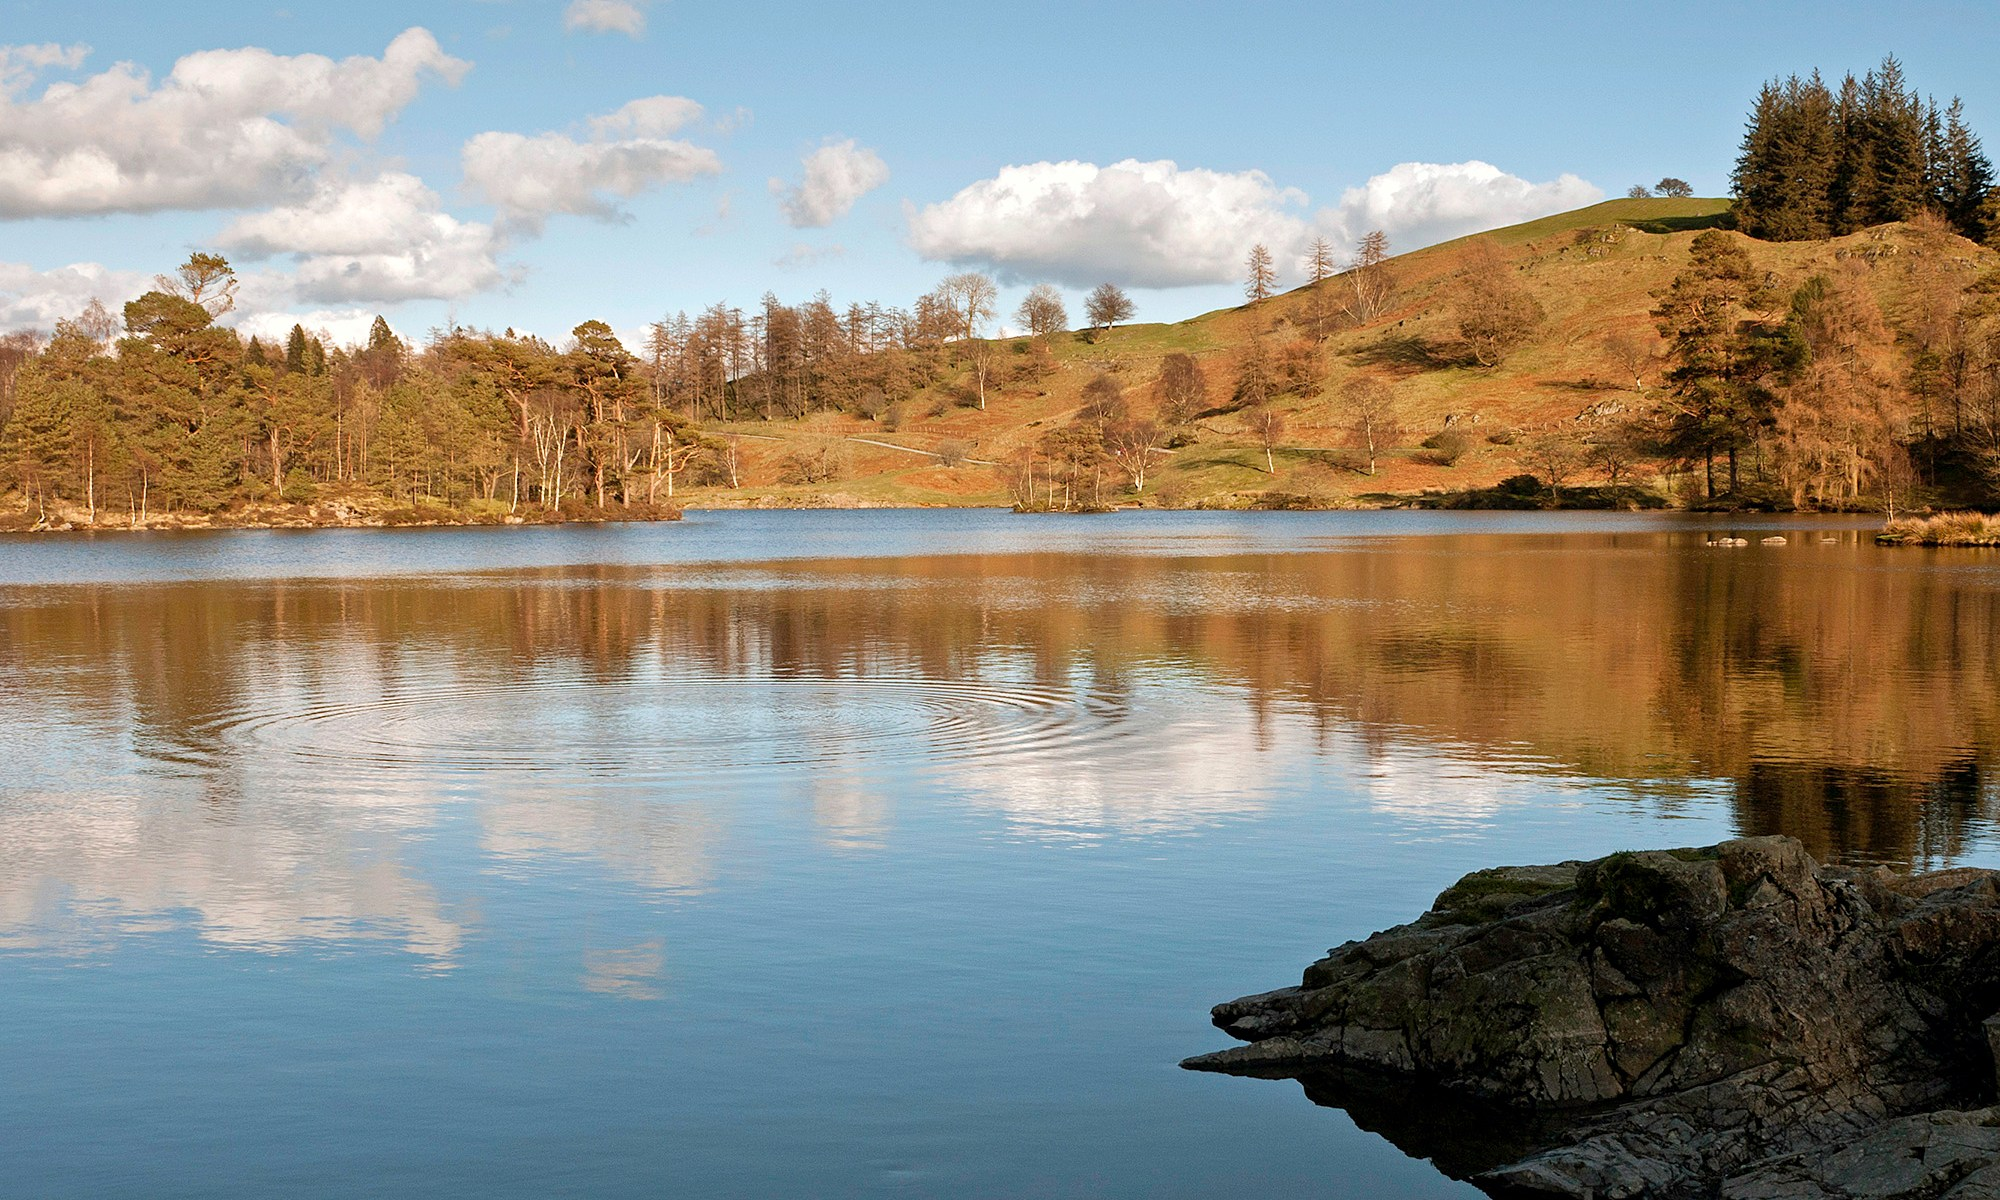 Tarn Hows Lake